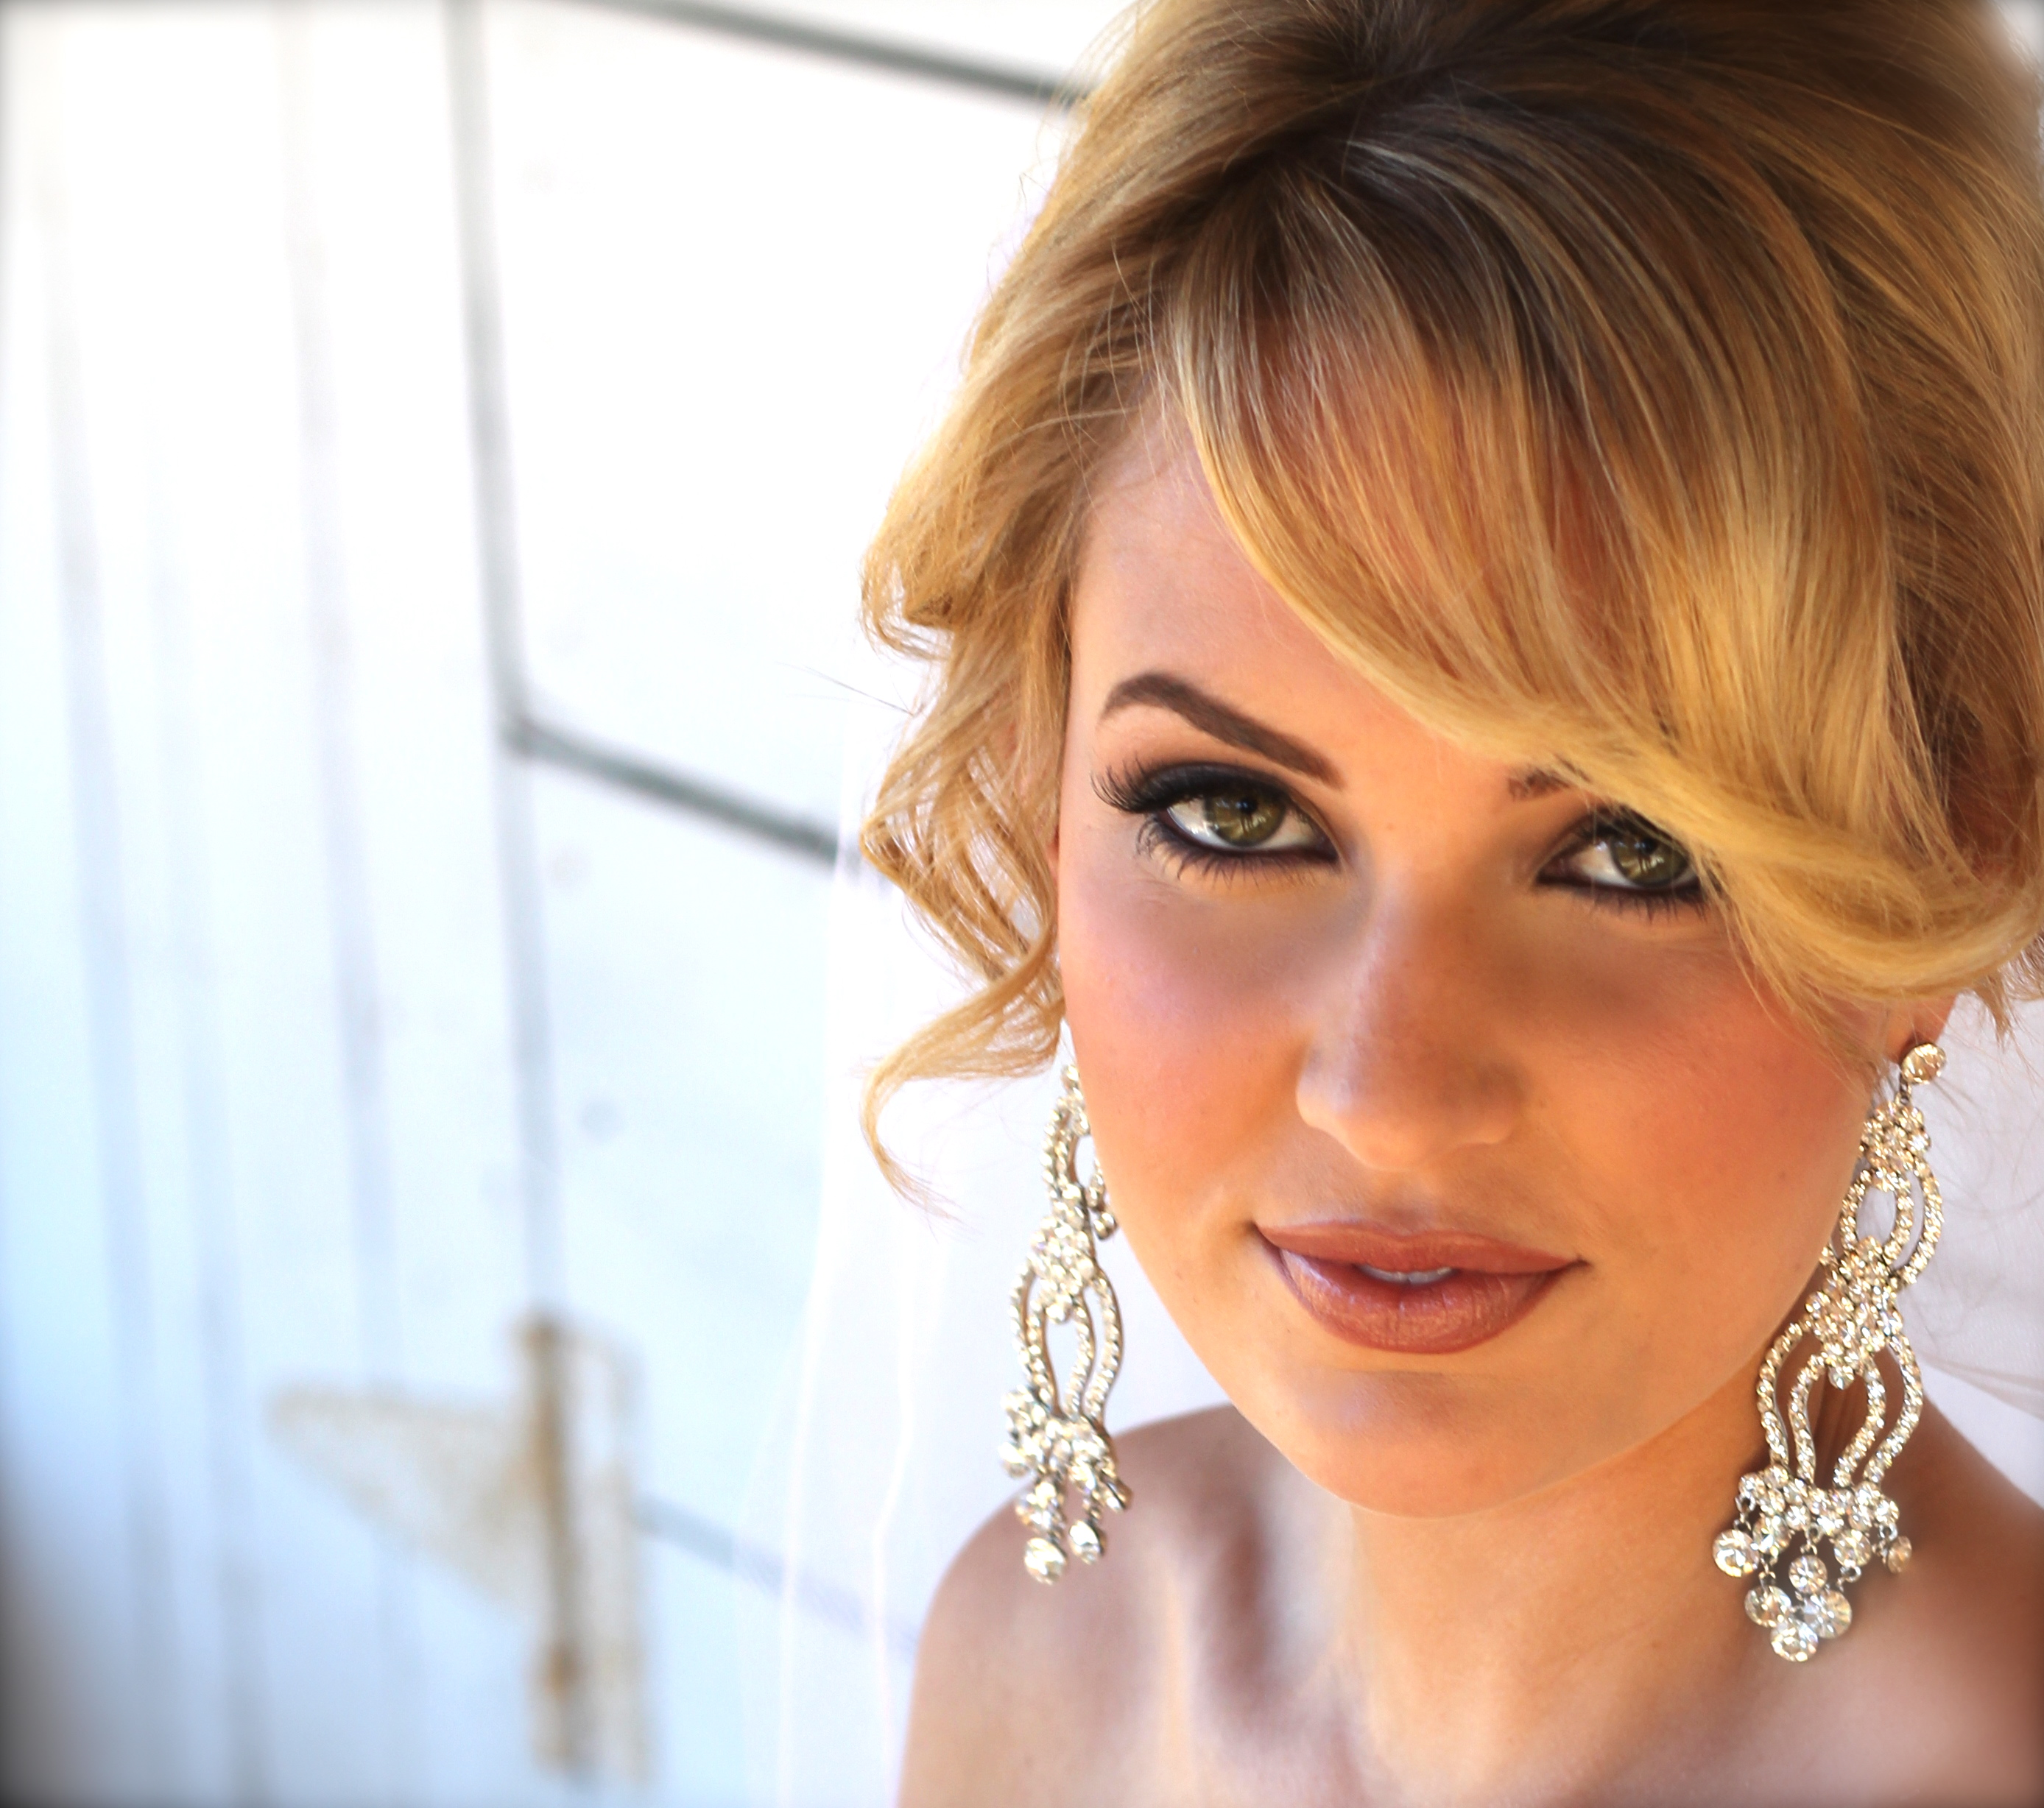 cindy rankin is a premier hair & makeup artist for weddings and on